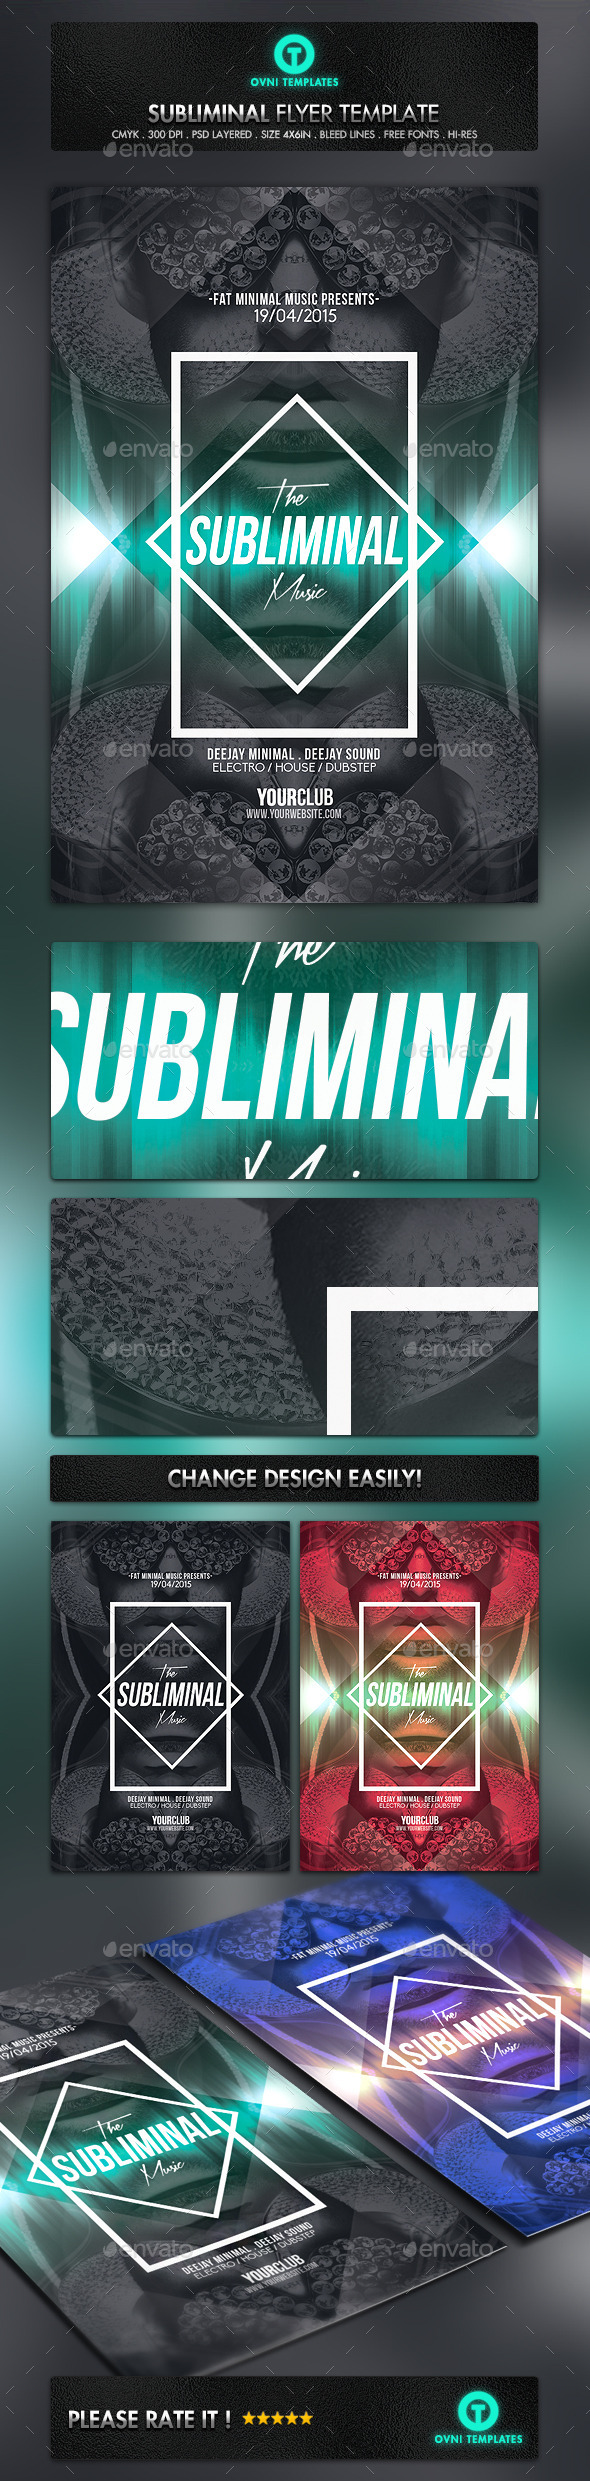 GraphicRiver Subliminal Minimal Flyer Template 11174430